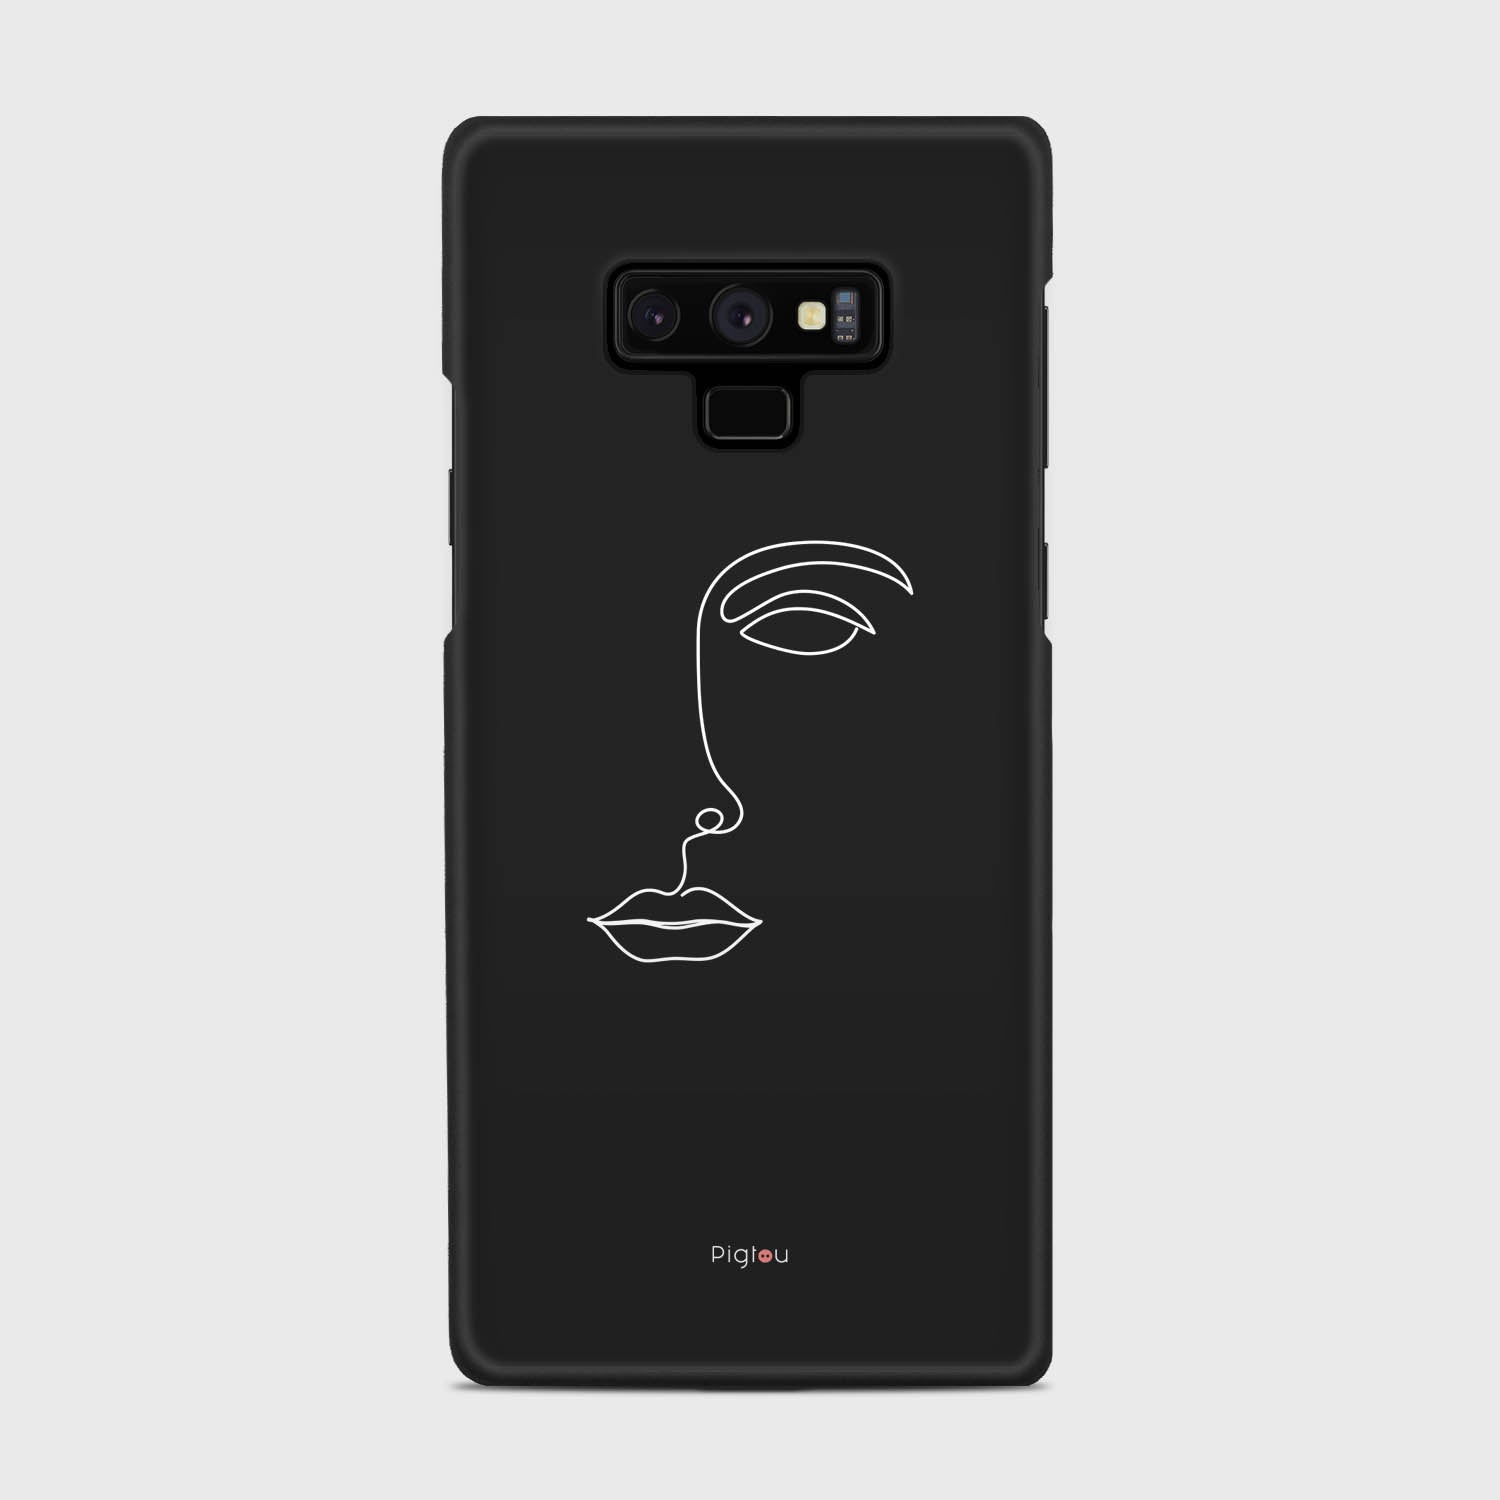 SILHOUETTE FACE Samsung Galaxy Note 9 cases | Pigtou